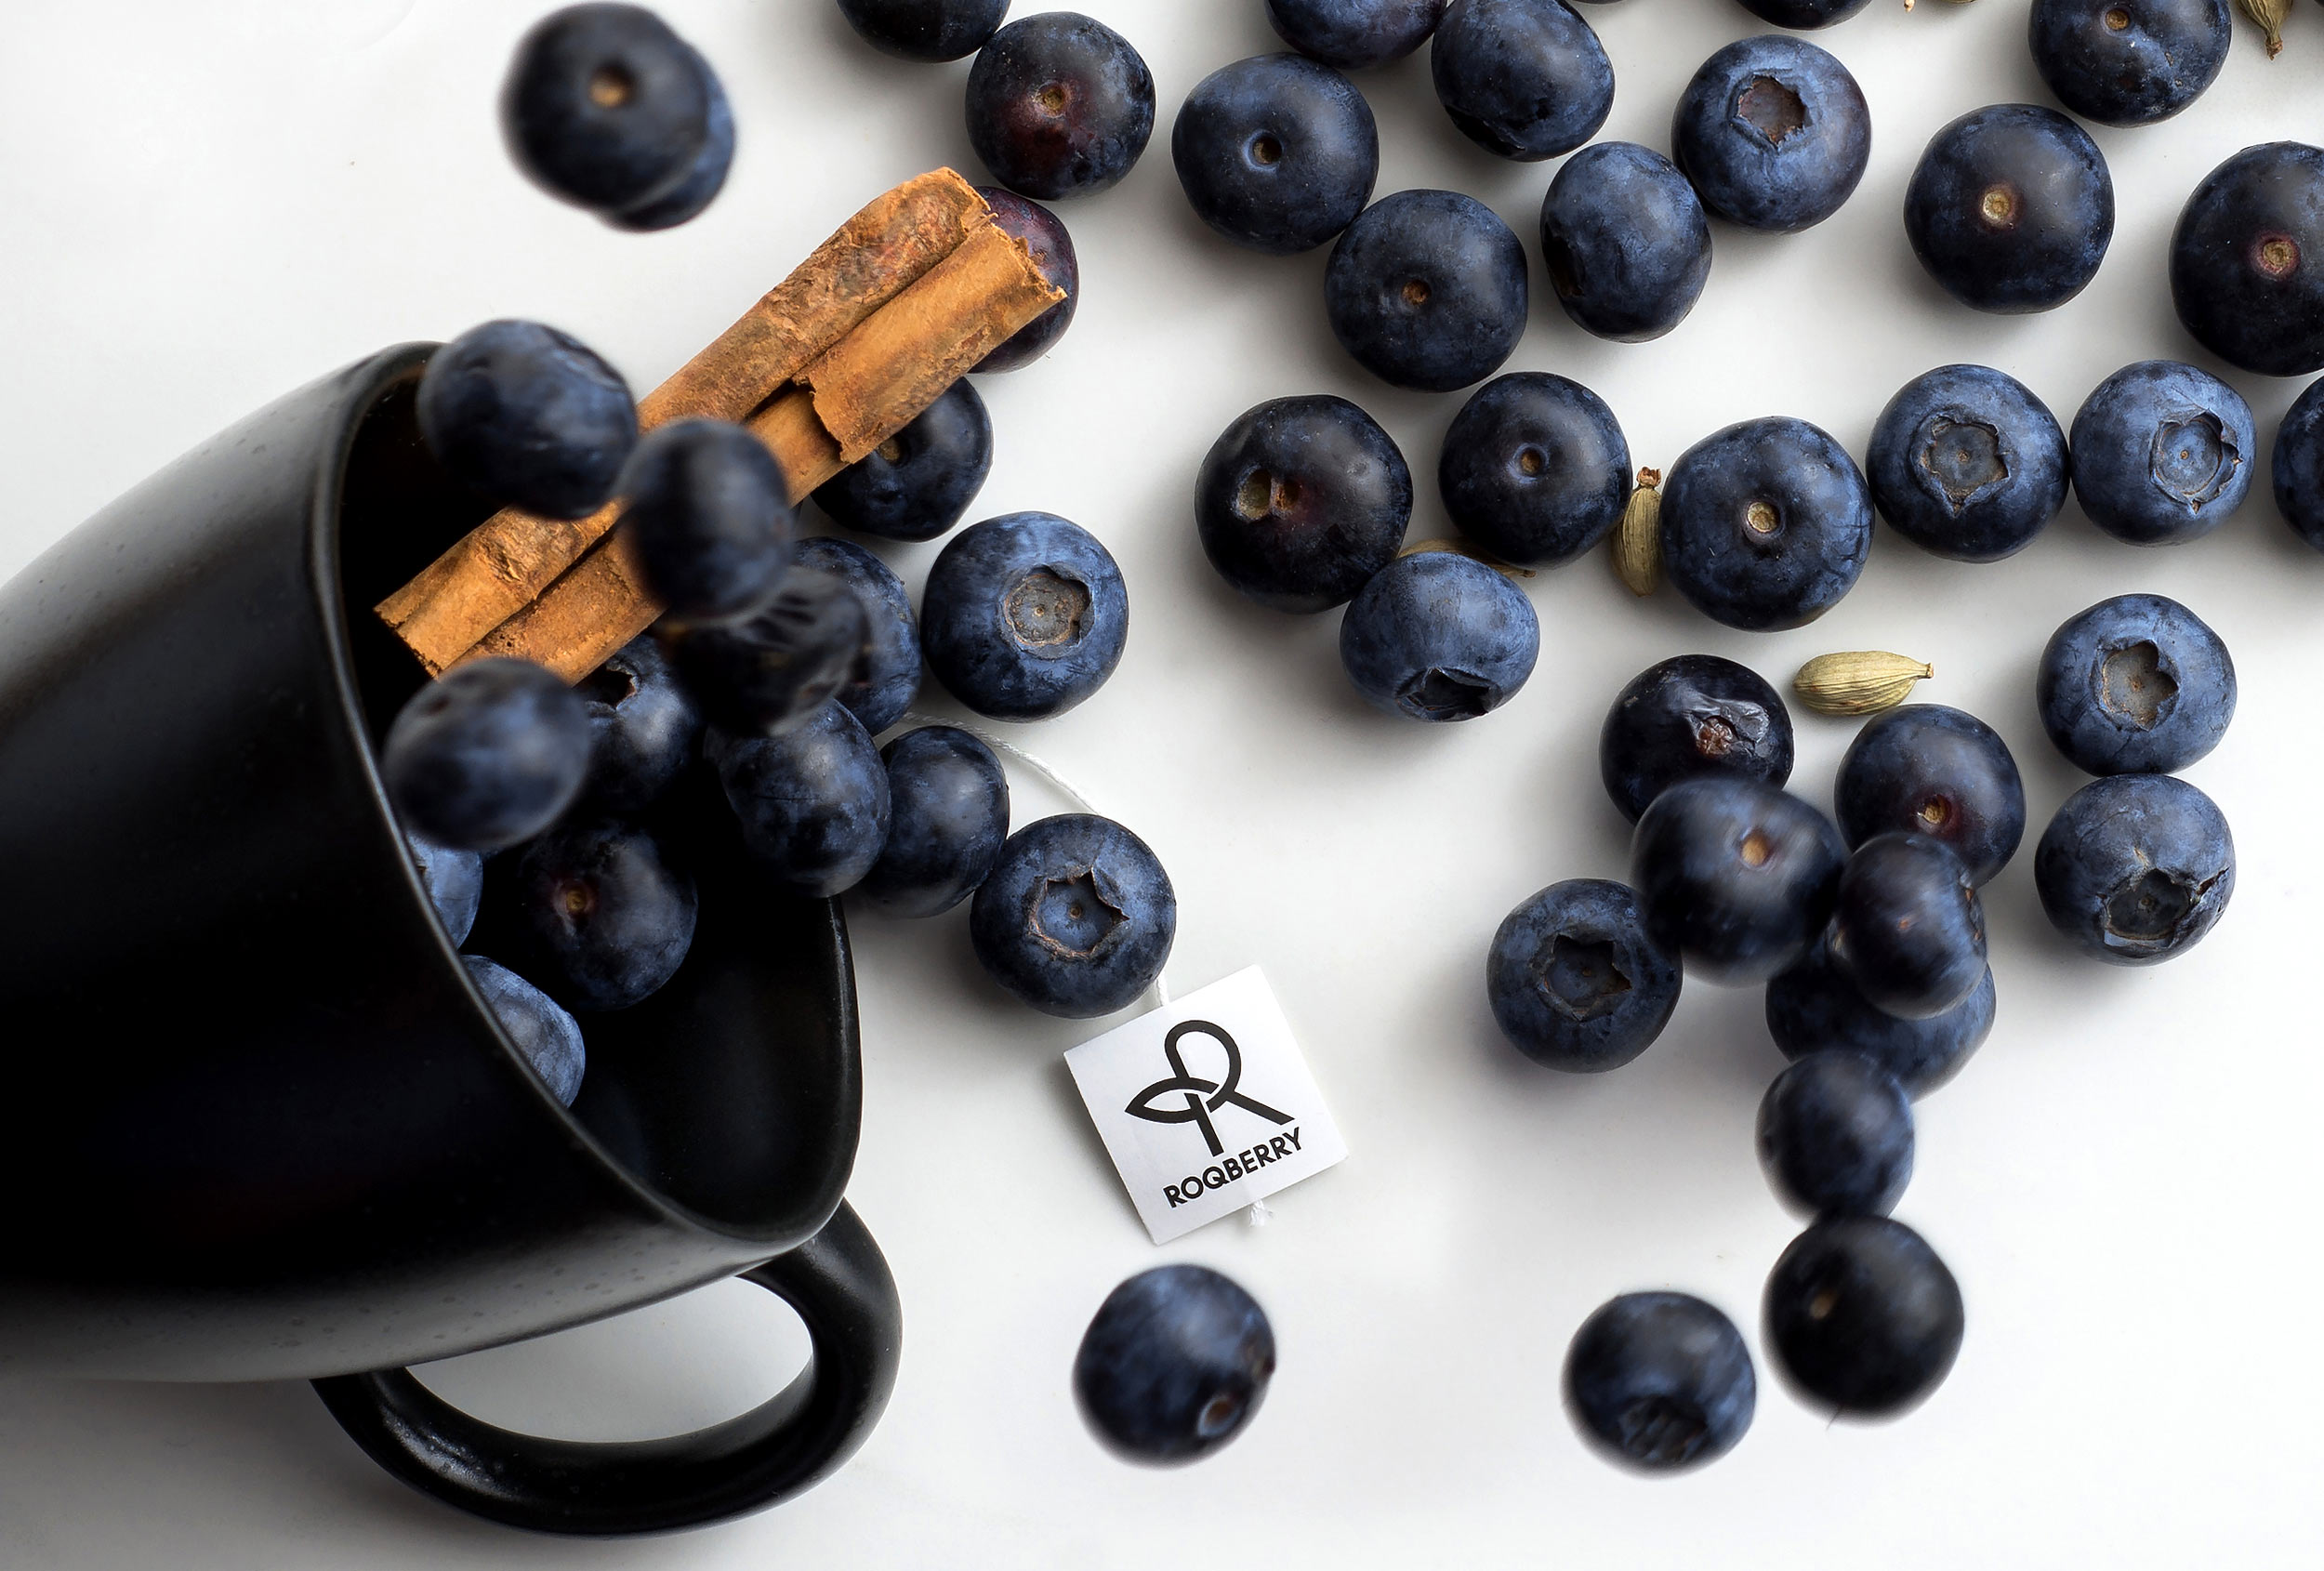 Roqberry Spiced Blueberry. Art directed by Distil Studio. Photography by Michael Feather.